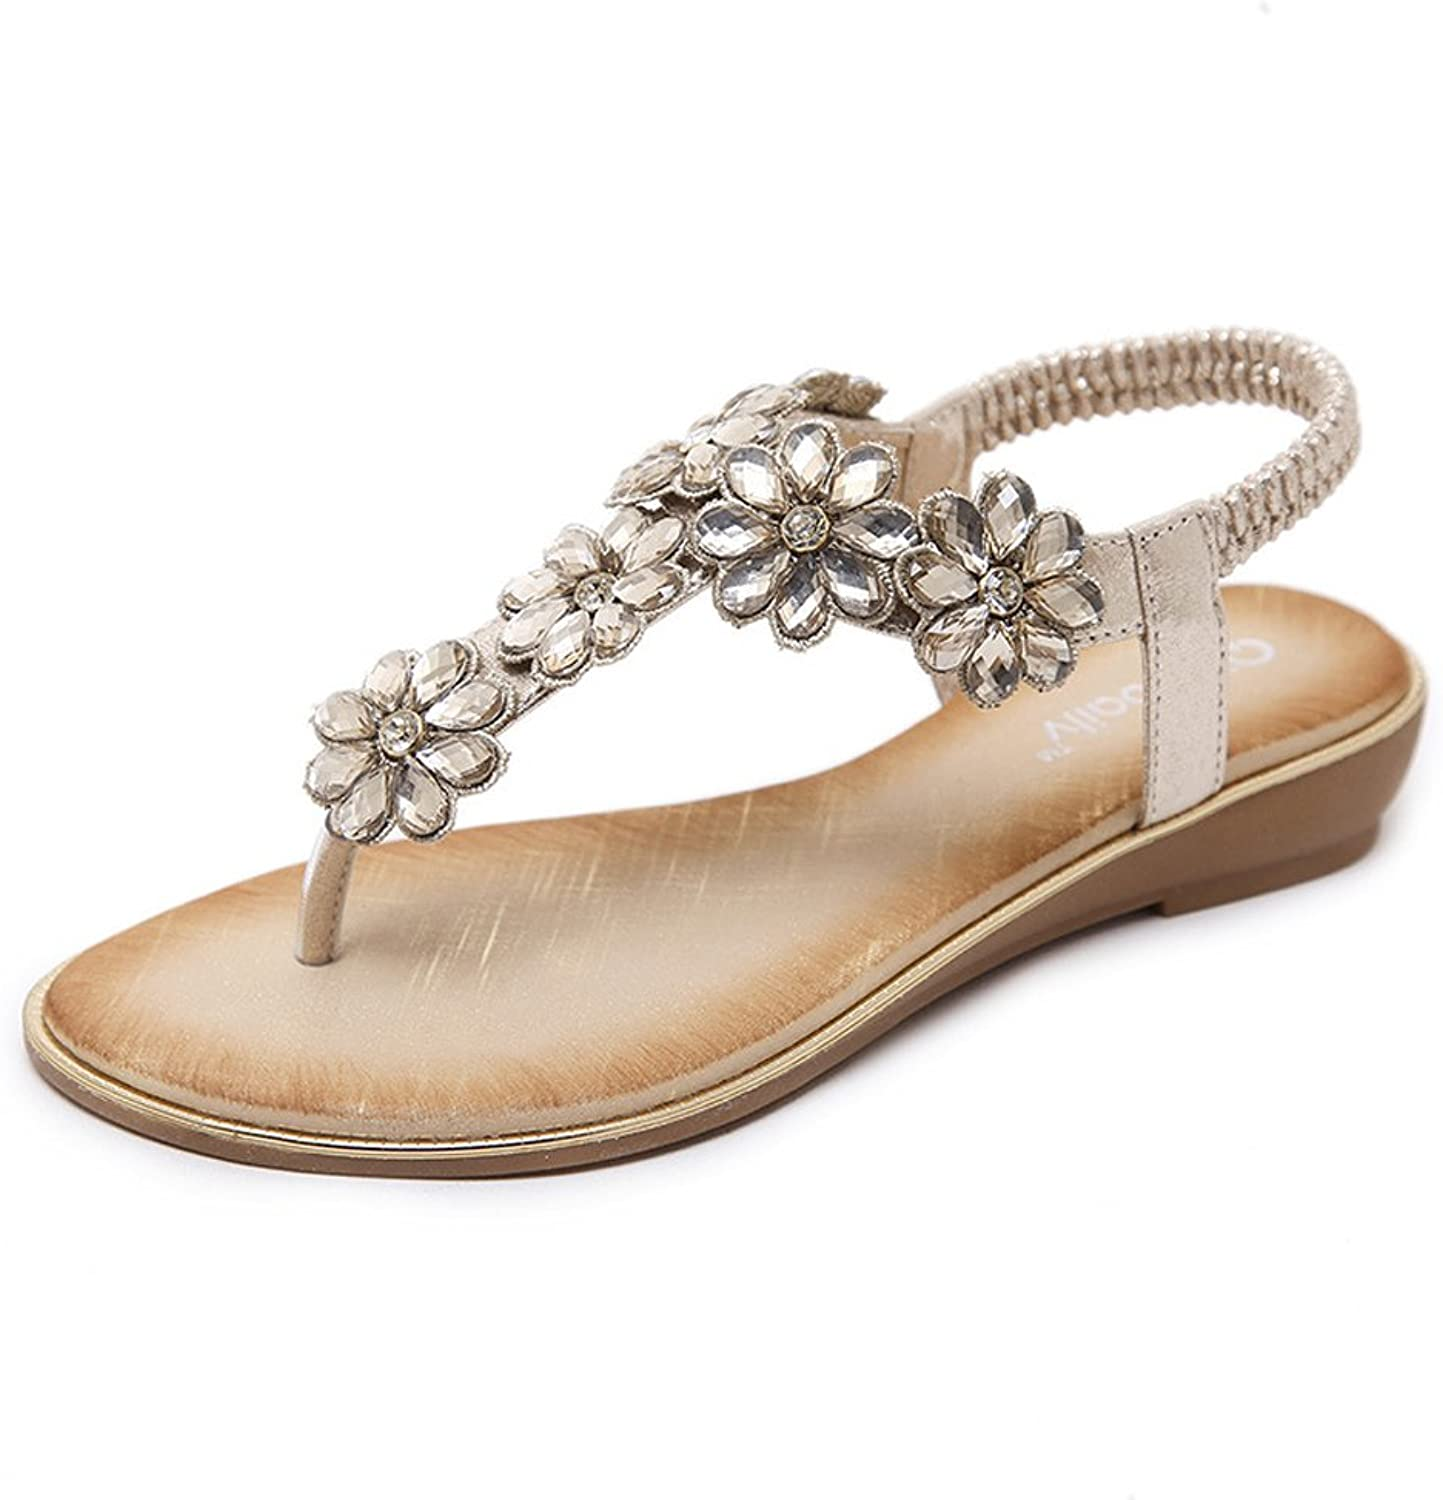 Navoku Women's Leather Fashion Floral Thong Sandals Sandles